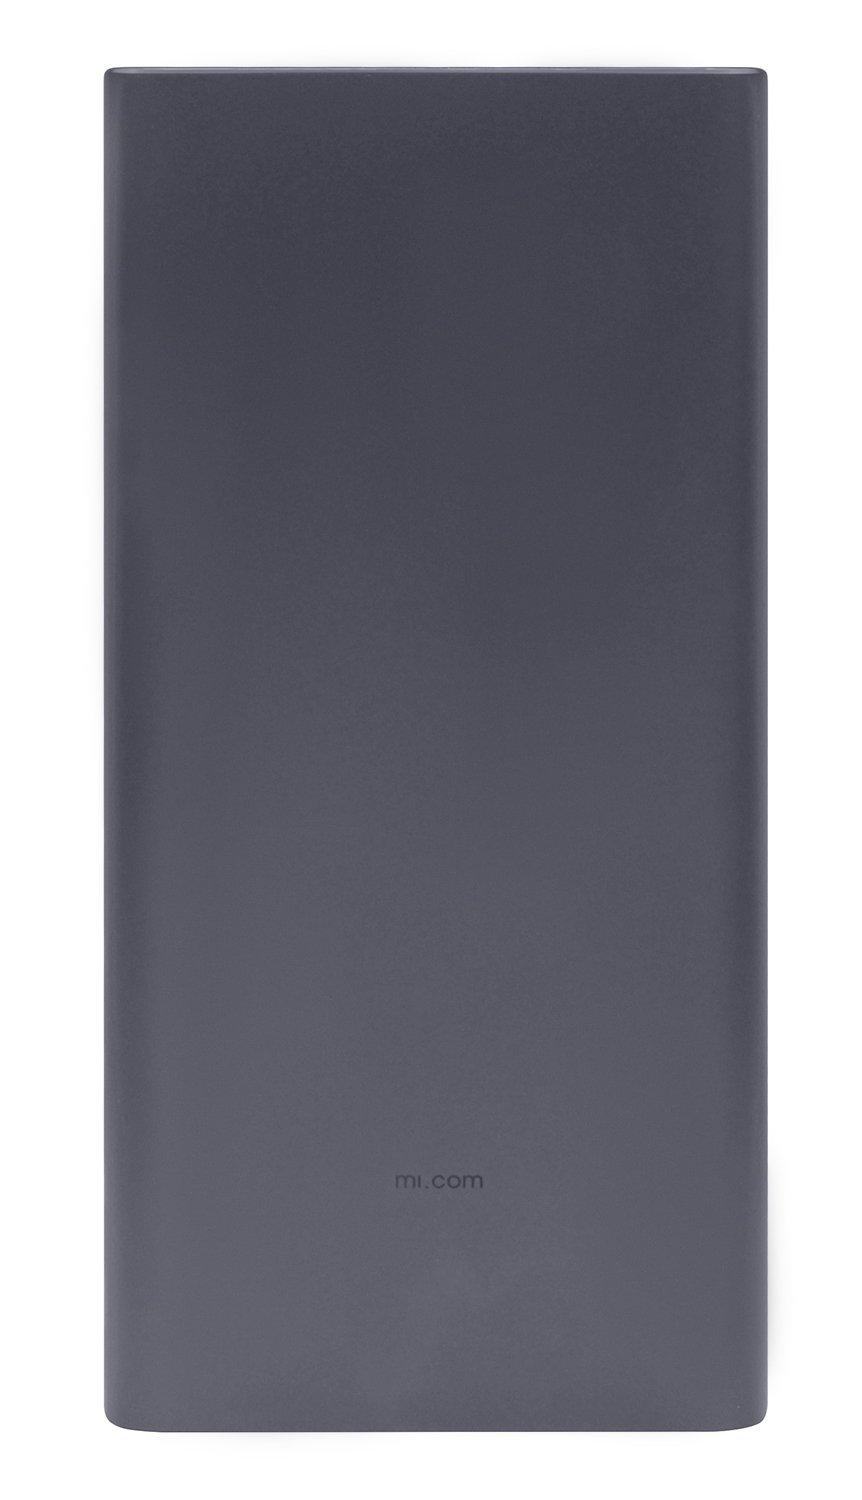 Power Bank Xiaomi 3 10000 mAh Black: Фото 4